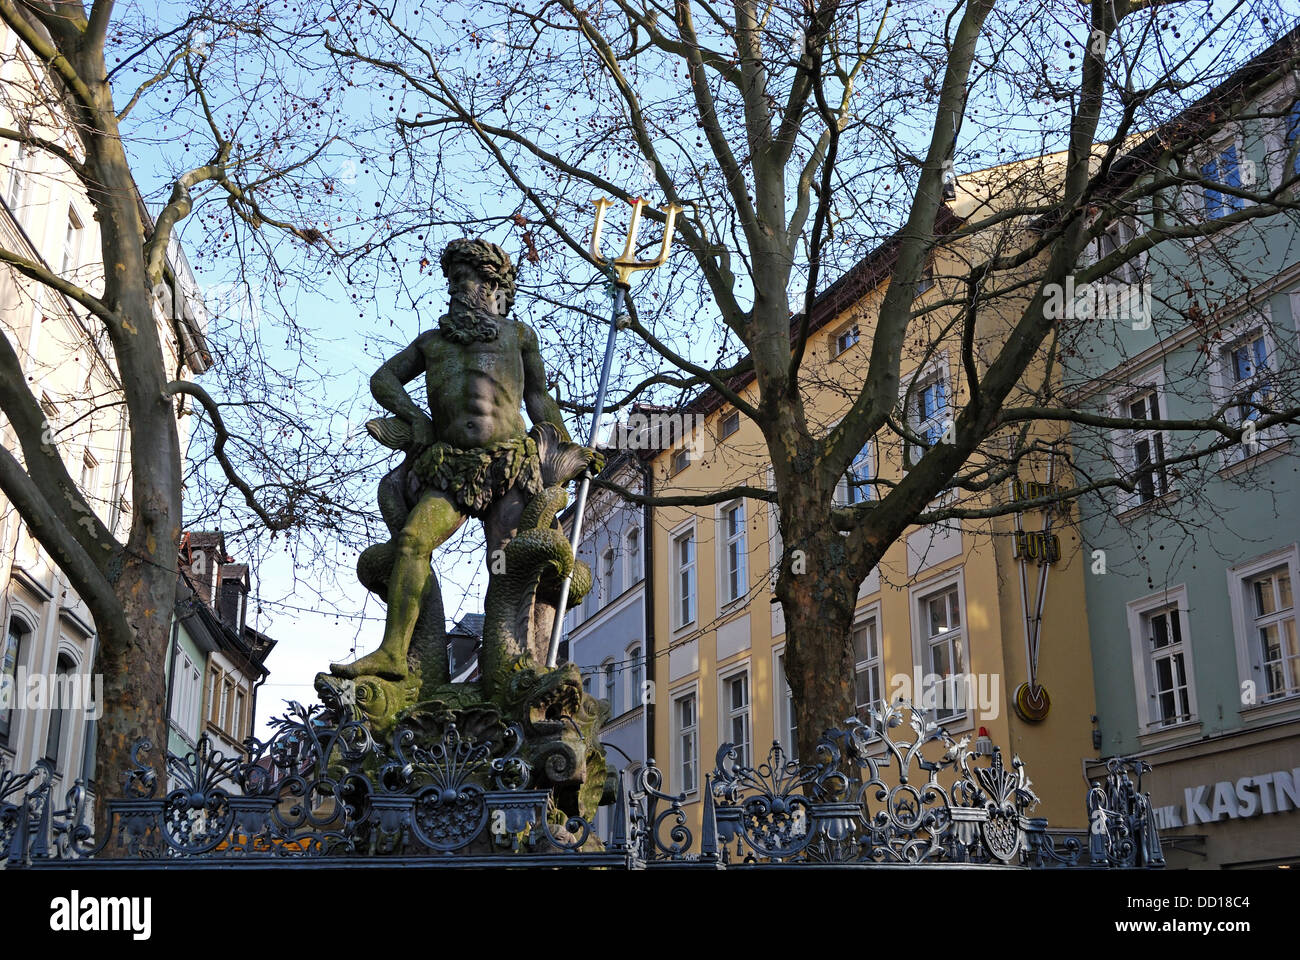 Statue of Neptune (Roman God of water and the sea), Bamberg, Bavaria, Germany, Europe. - Stock Image